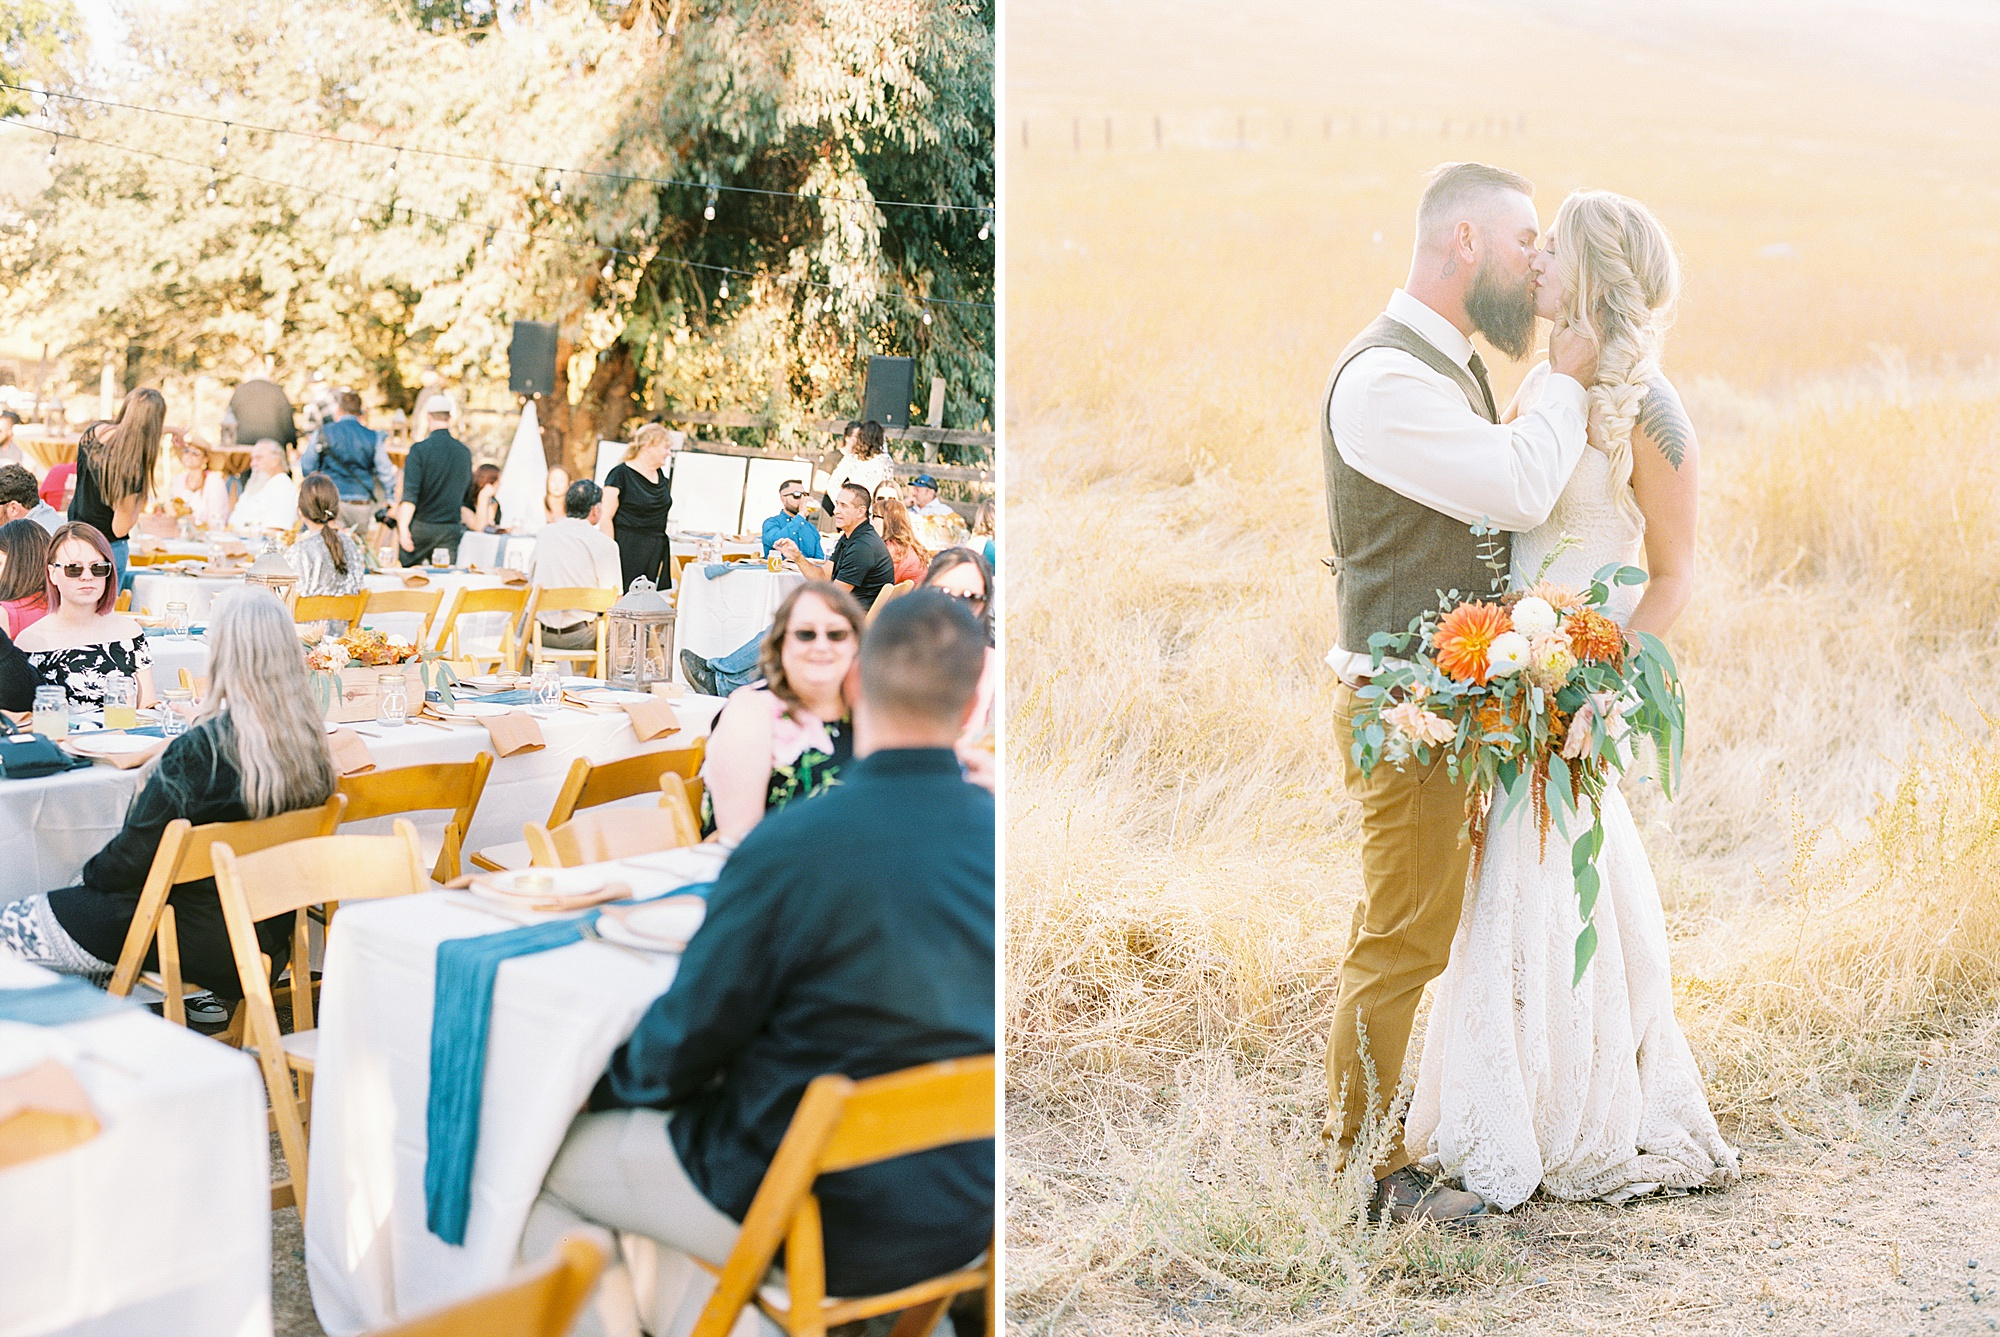 Sonora Wedding Photographer - Tiffany and Jesse - Ashley Baumgartner - Private Estate Summer Wedding_0115.jpg